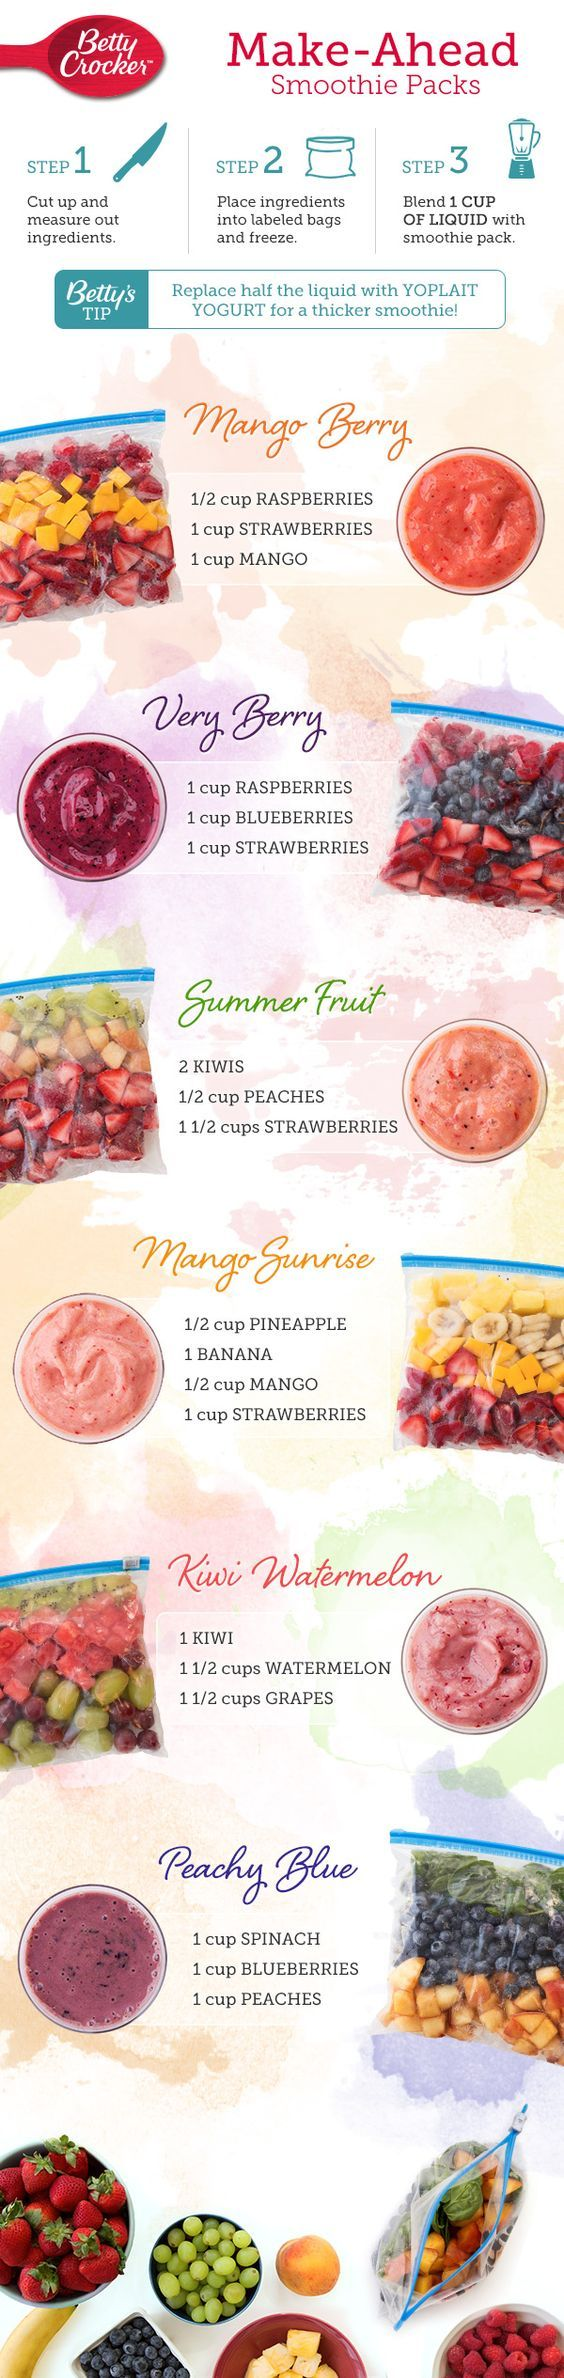 Simplify your morning routine by keeping a freezer full of smoothie packs on hand